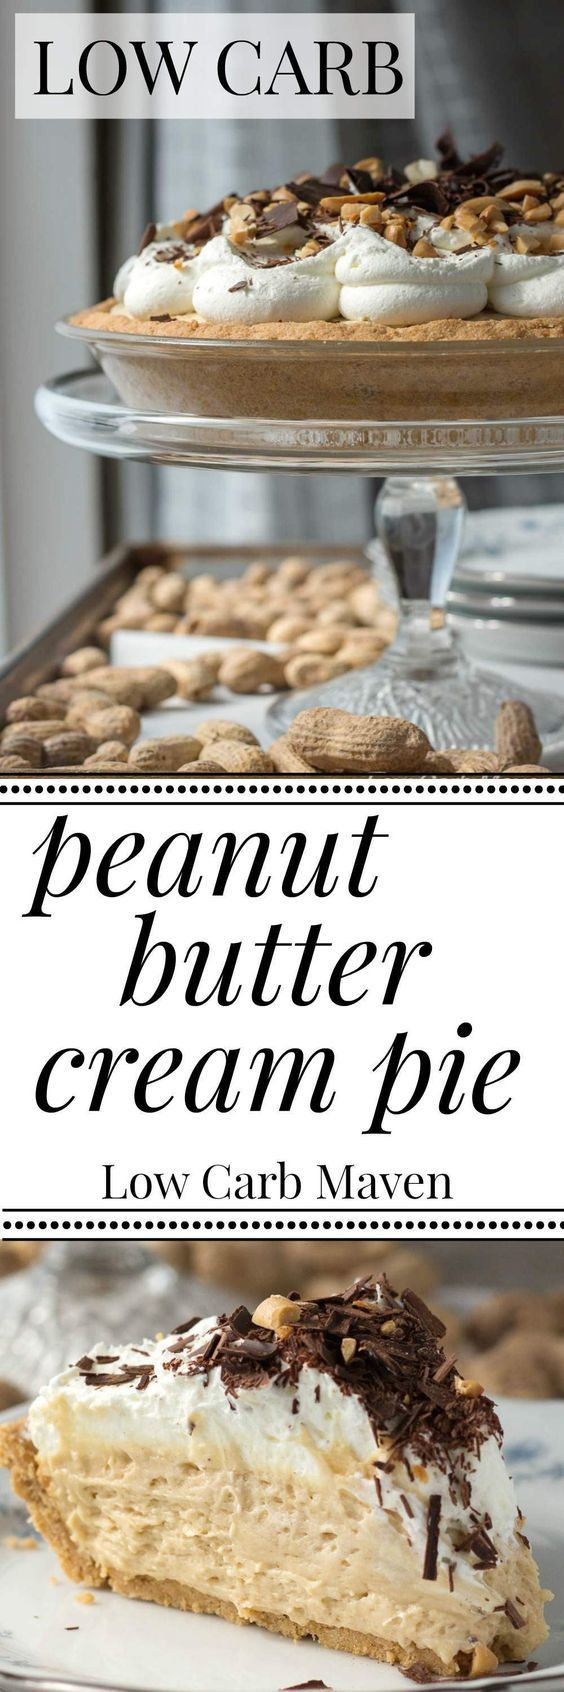 A real, scratch, low carb peanut butter pie made using whole ingredients Source: www.lowcarbmaven.com